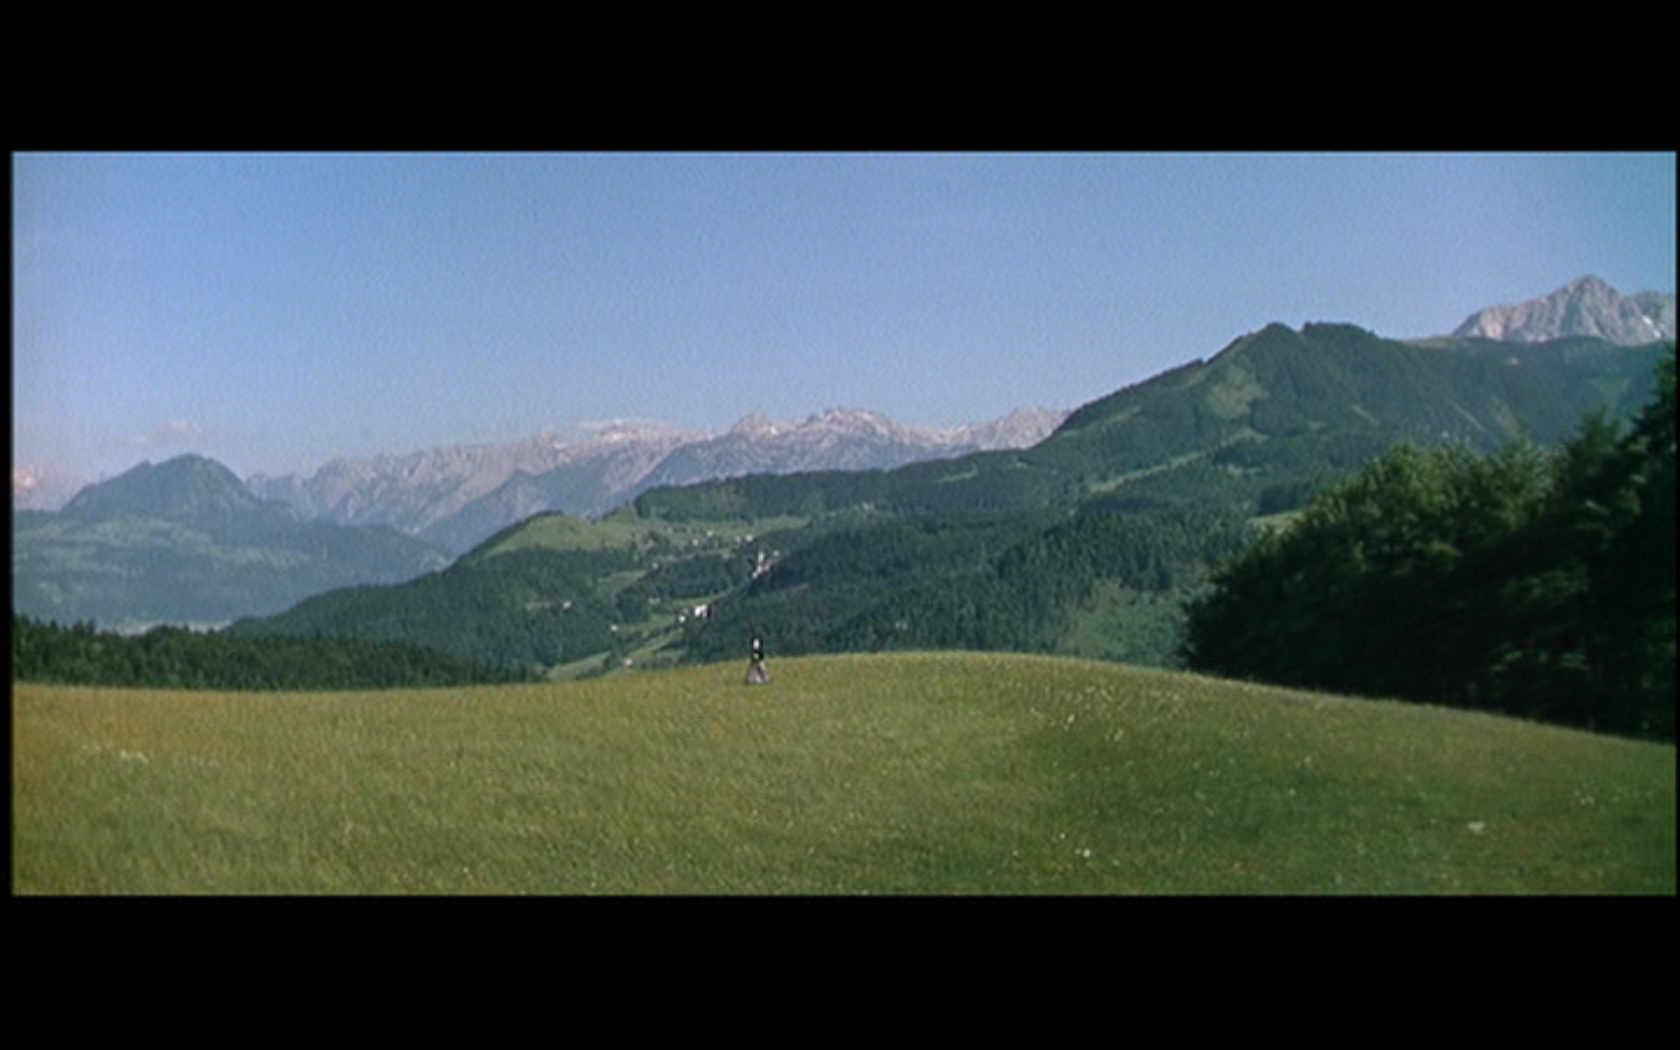 Helicopter shot from The Sound of Music